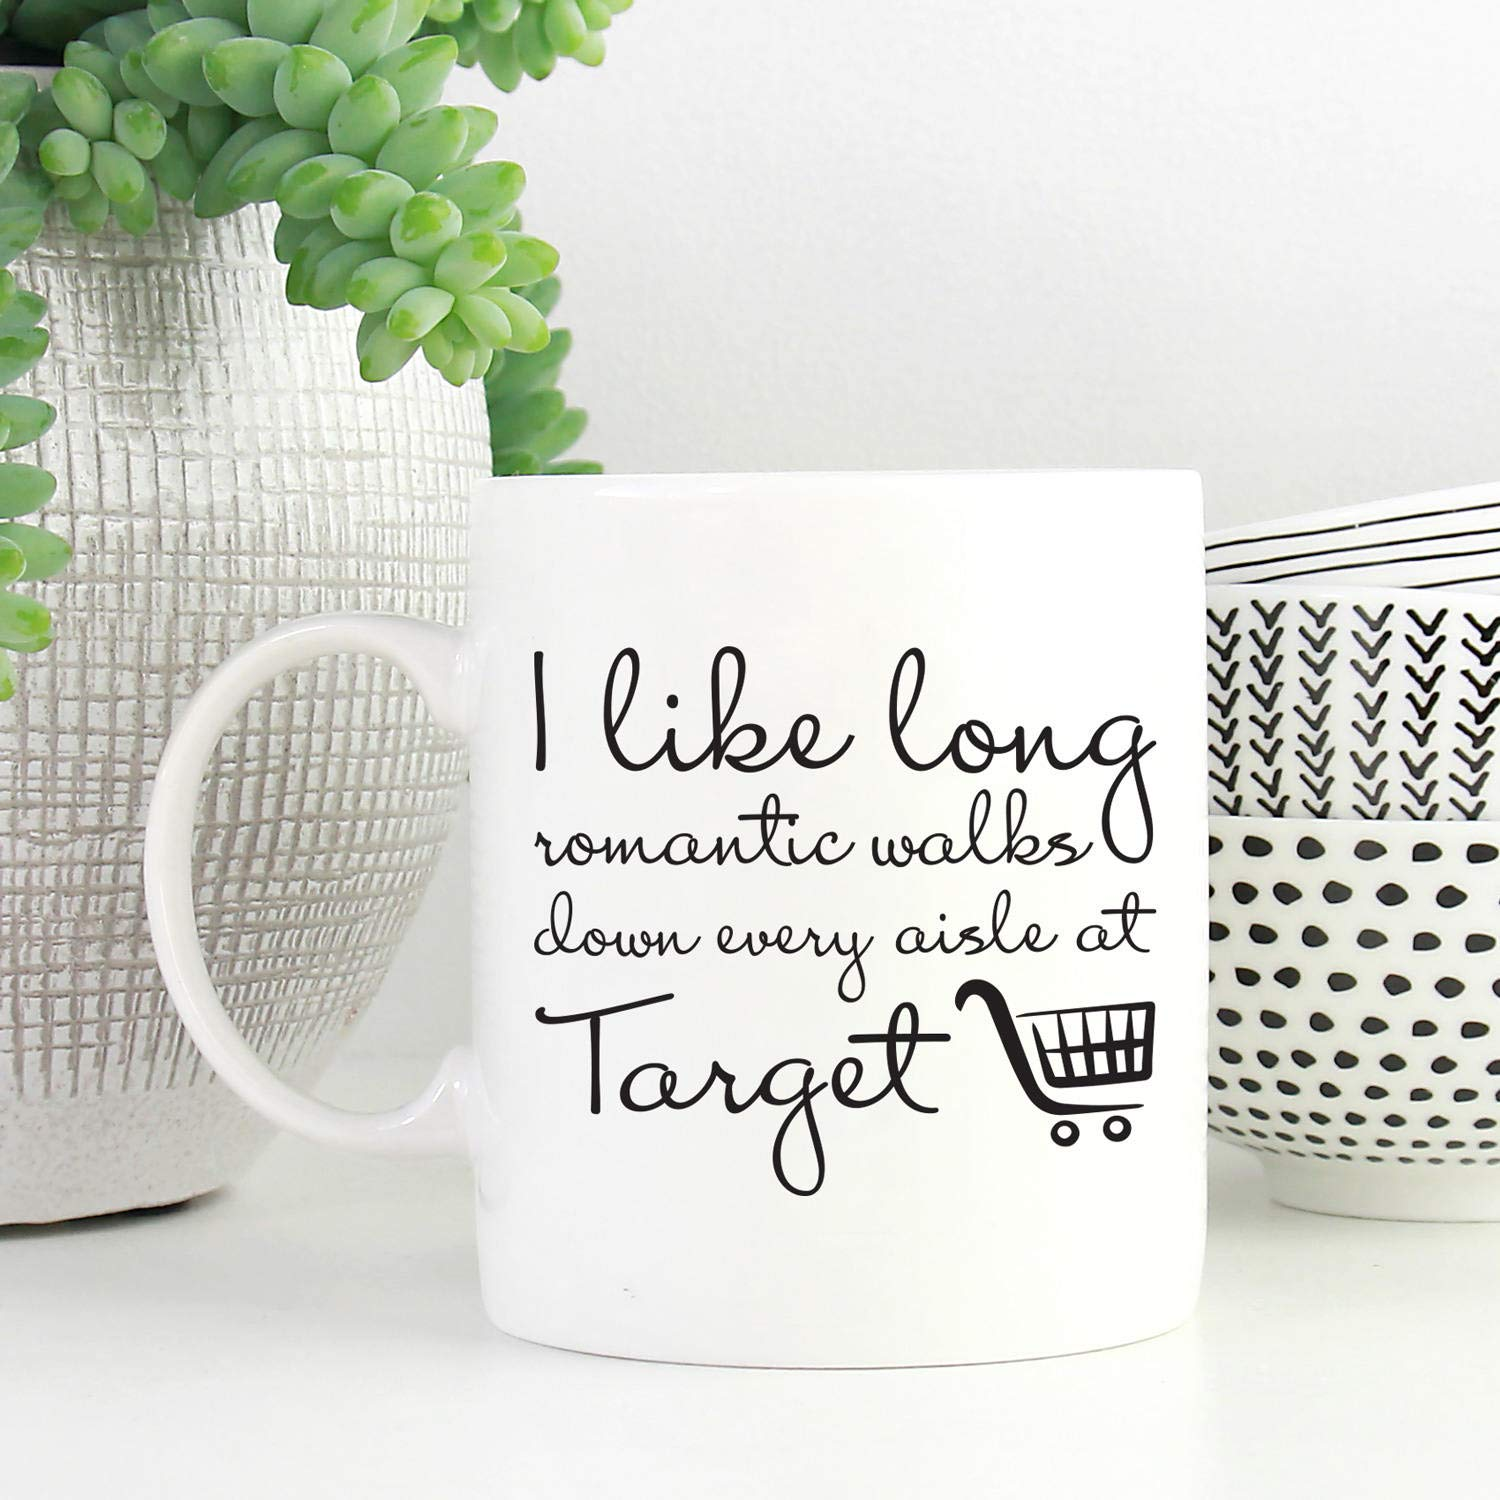 Amazon I Like Long Romantic Walks Down Every Aisle At Target Mug Coffee Gift For Mom Best Friend Gifts Her Kitchen